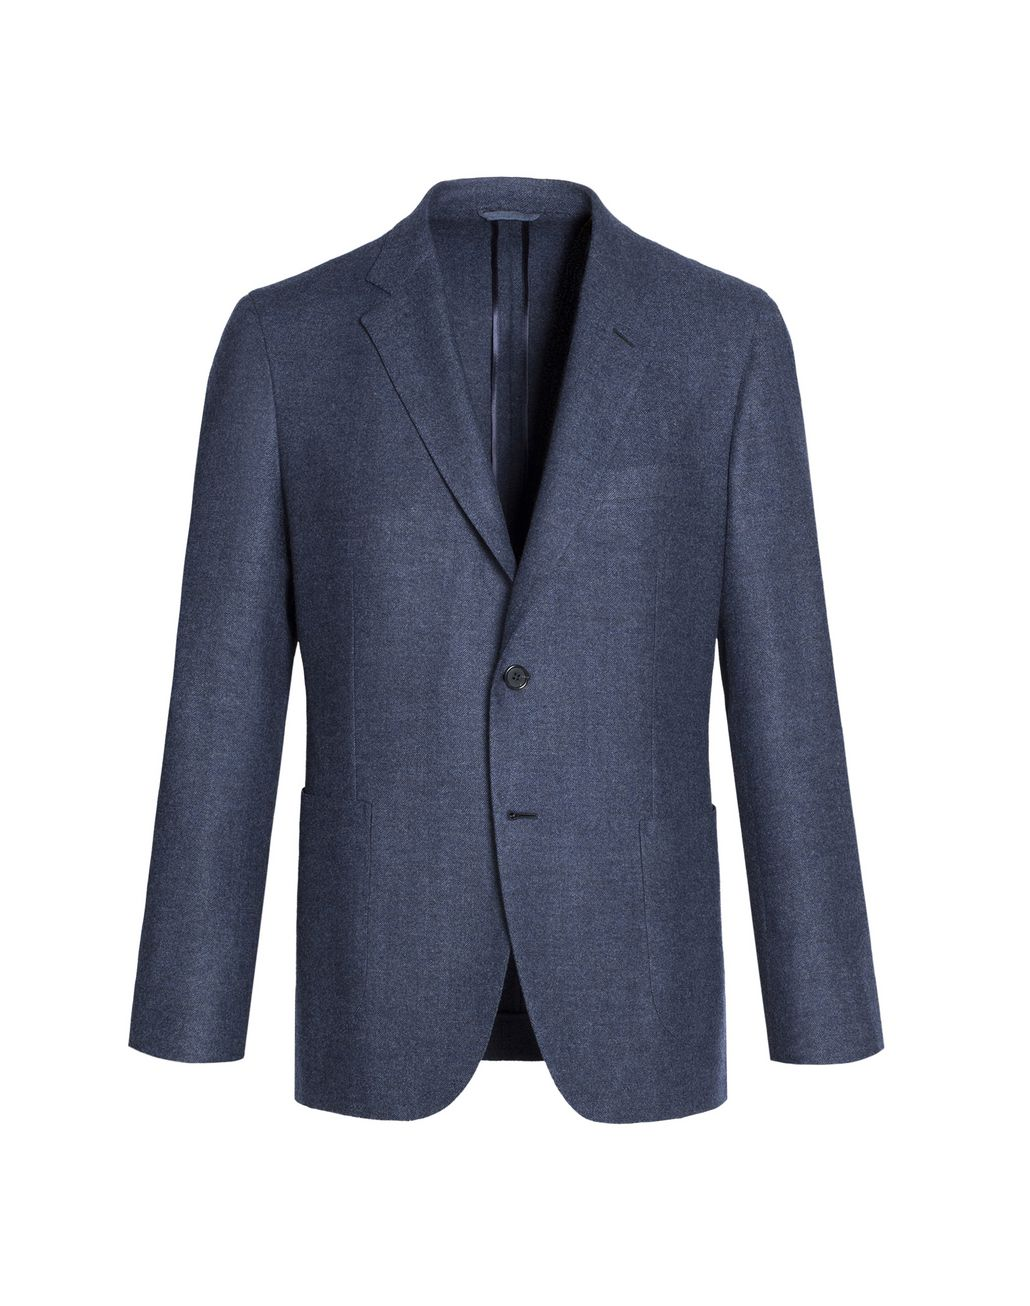 BRIONI Denim Blue Herringbone Plume Jacket Jackets Man f